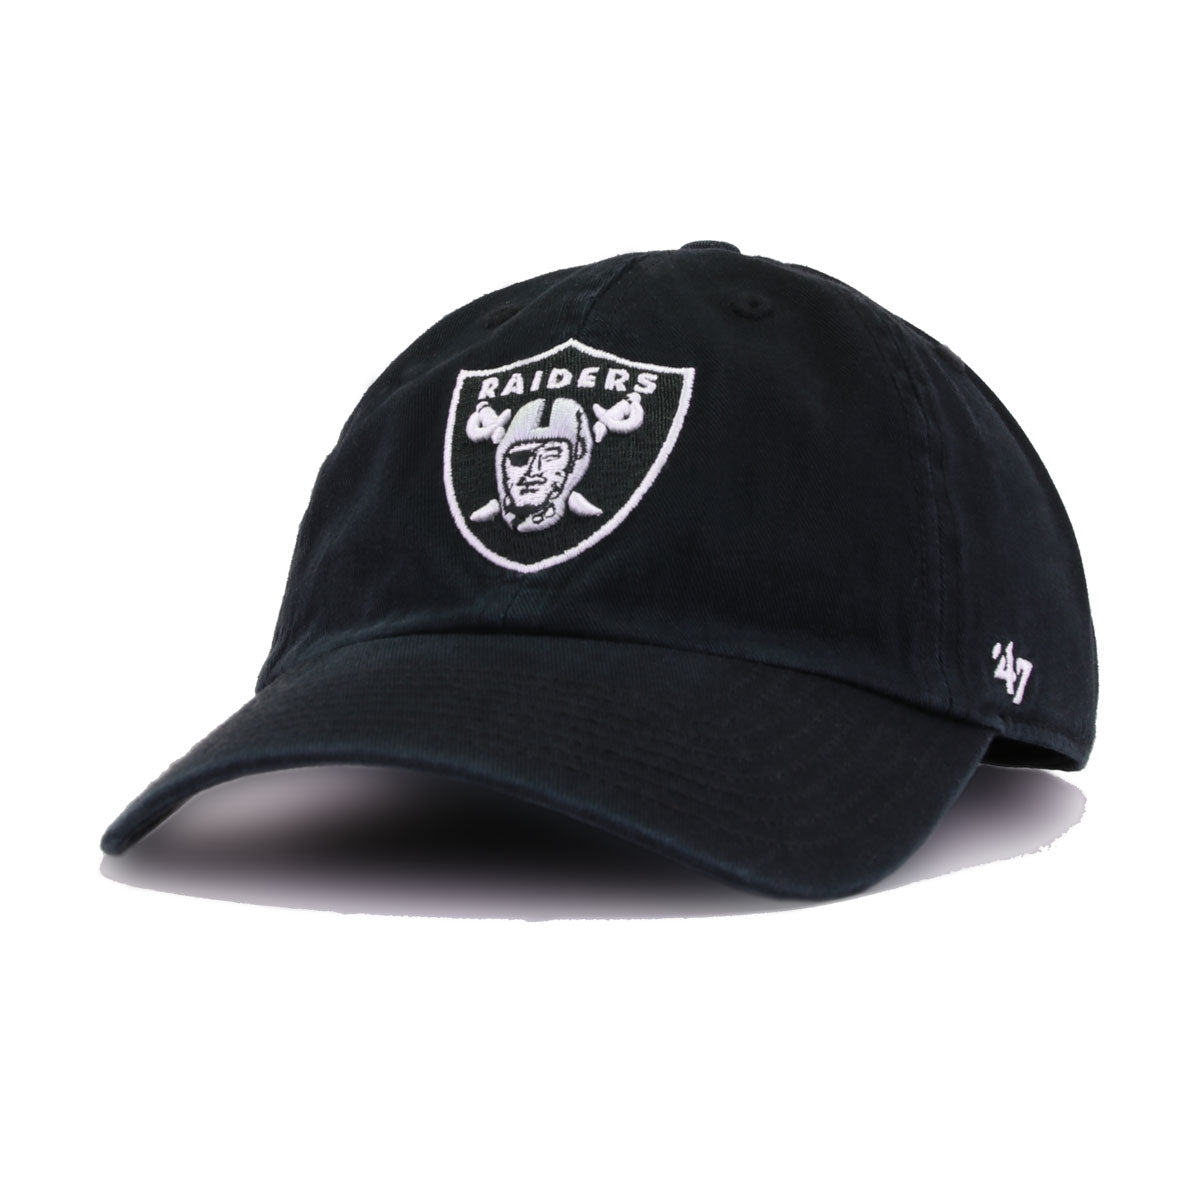 Oakland Raiders Black 47 Brand Clean Up Dad Hat